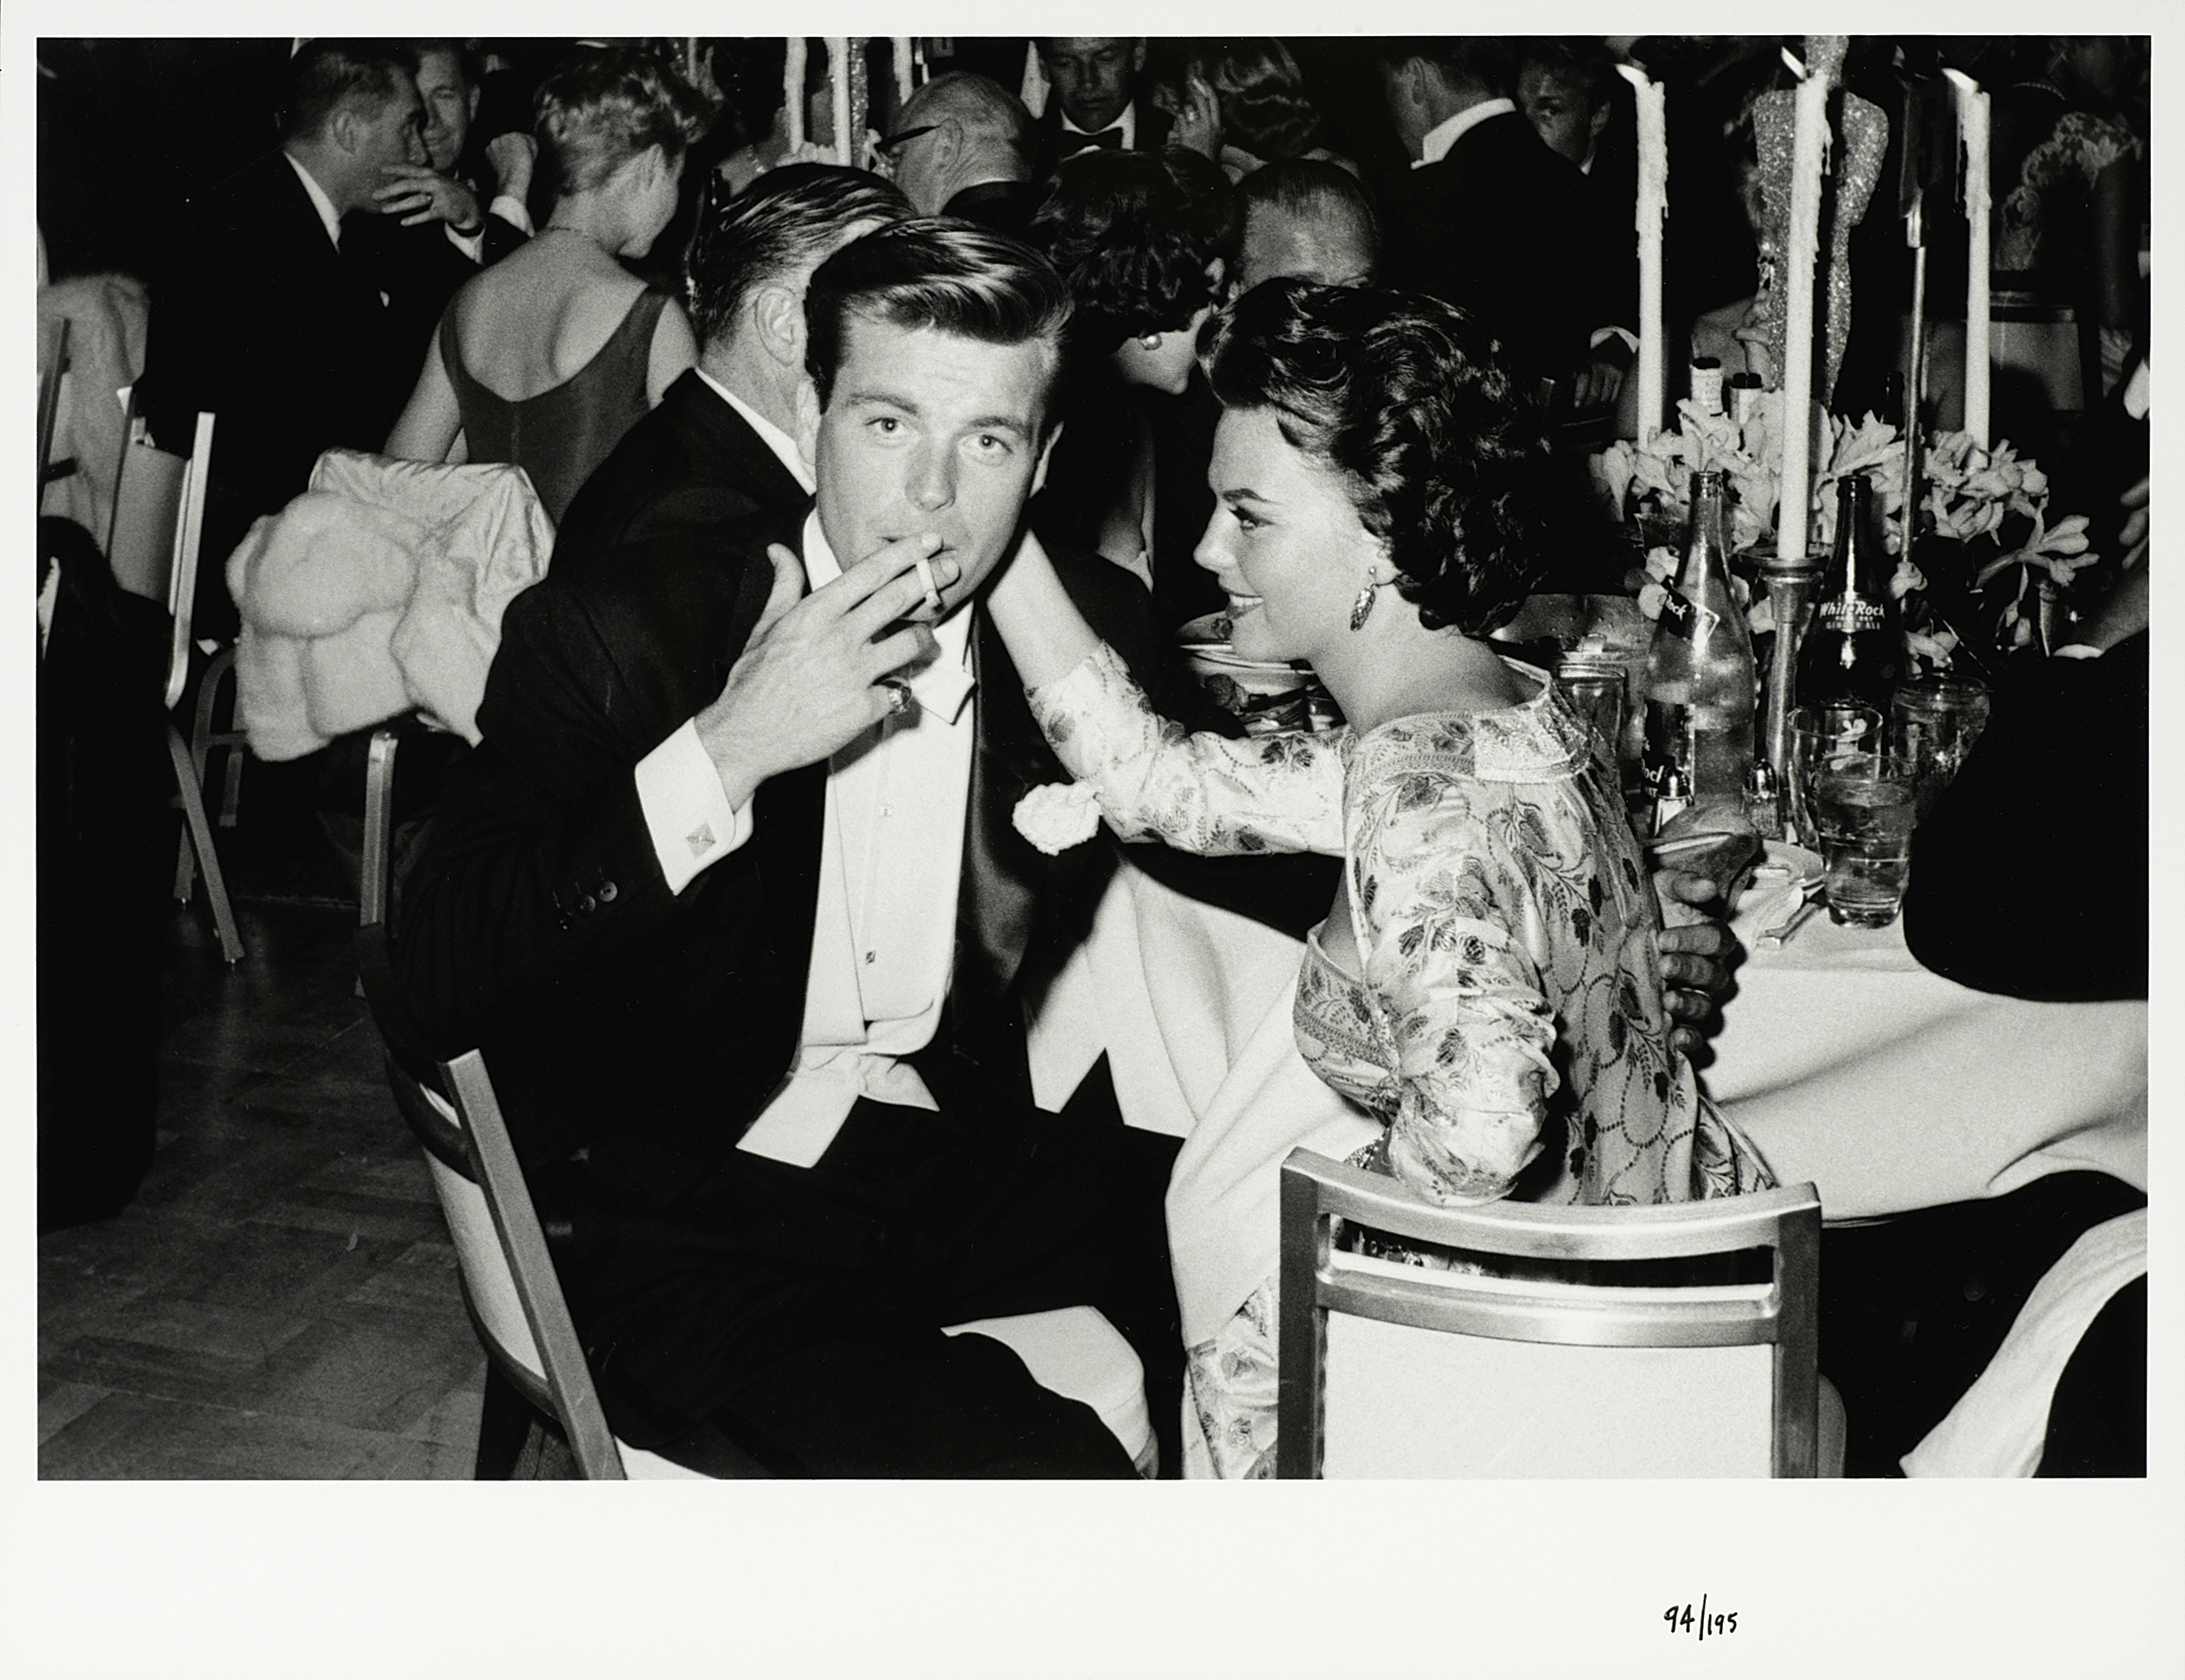 Lot 10 - Frank Worth (American, b.1923-d.2000): A black and white photographic print of Robert Wagner and ...